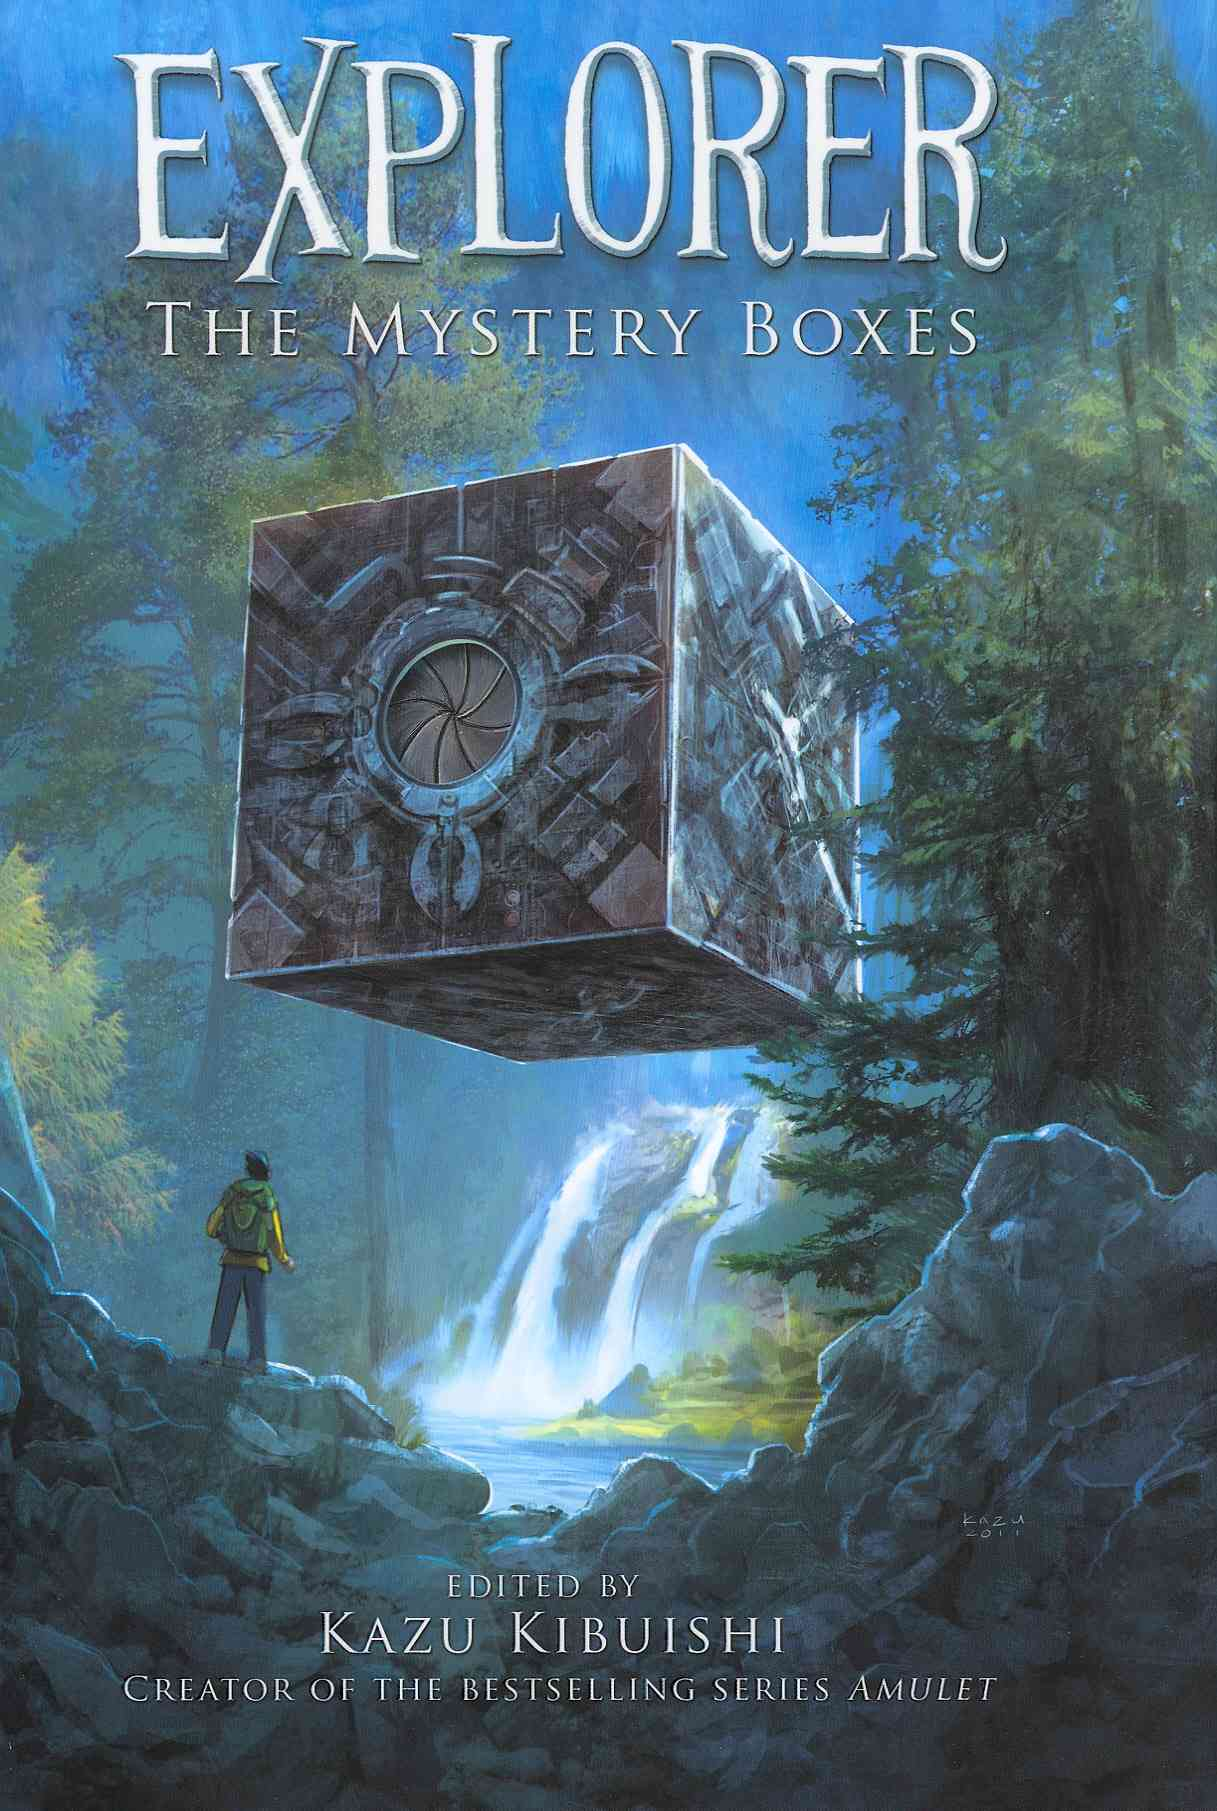 Explorer: The Mystery Boxes (Hardcover)